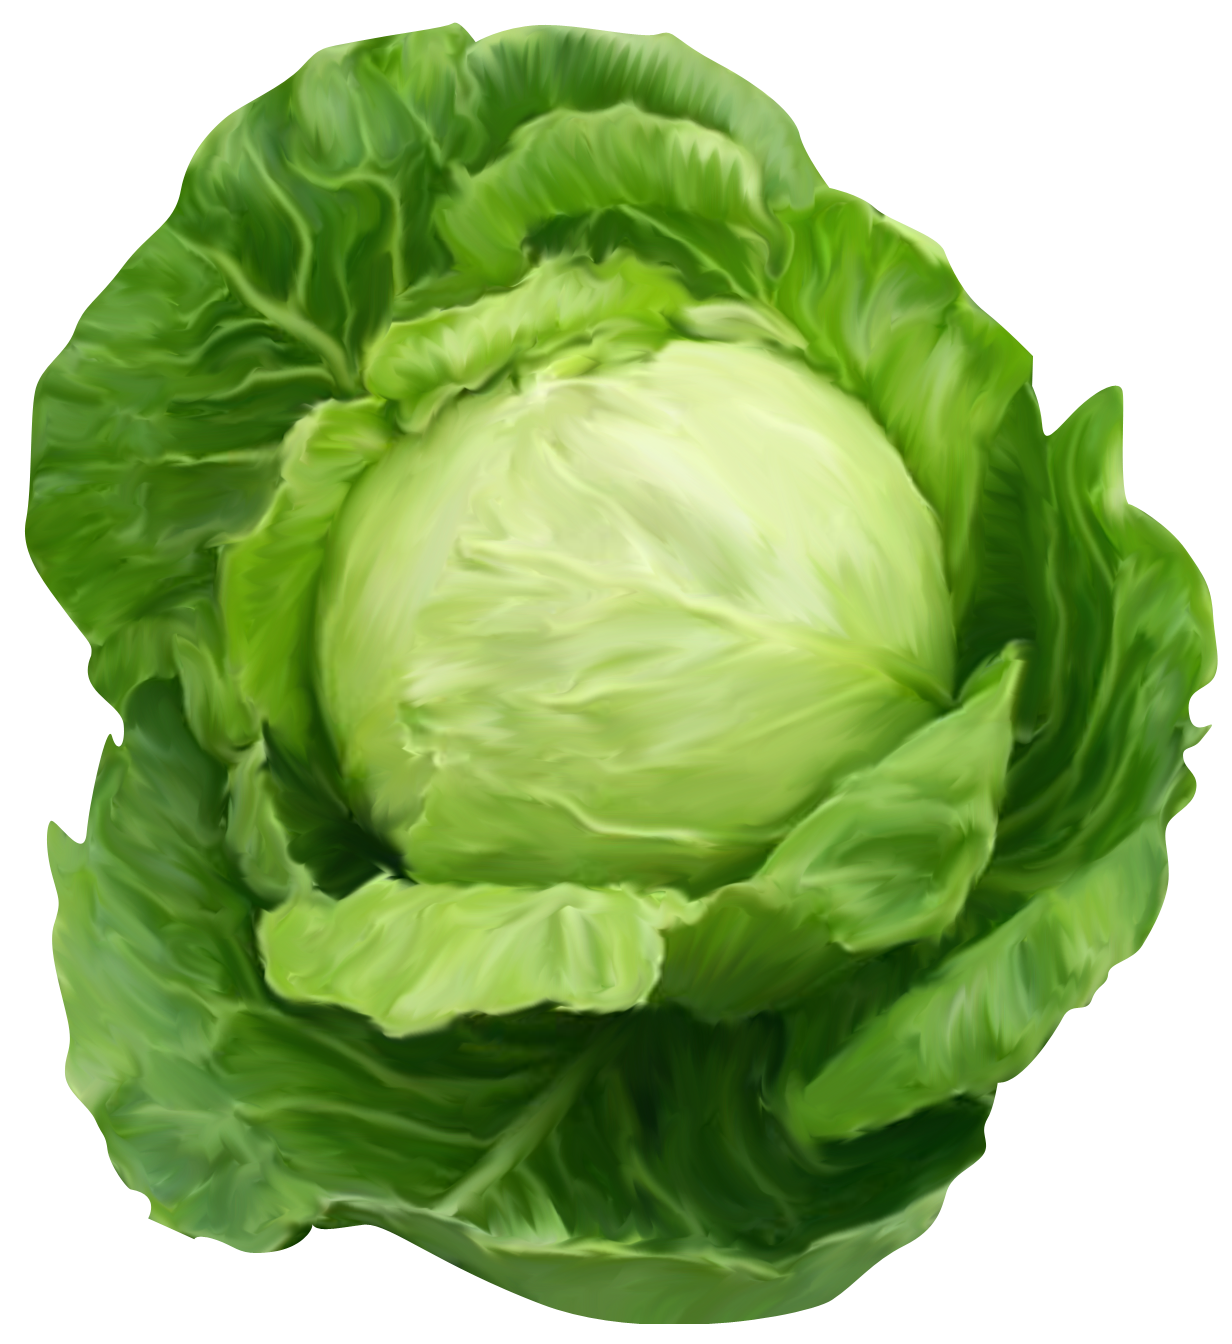 Cabbage clipart illustration. In pinterest vegetables and